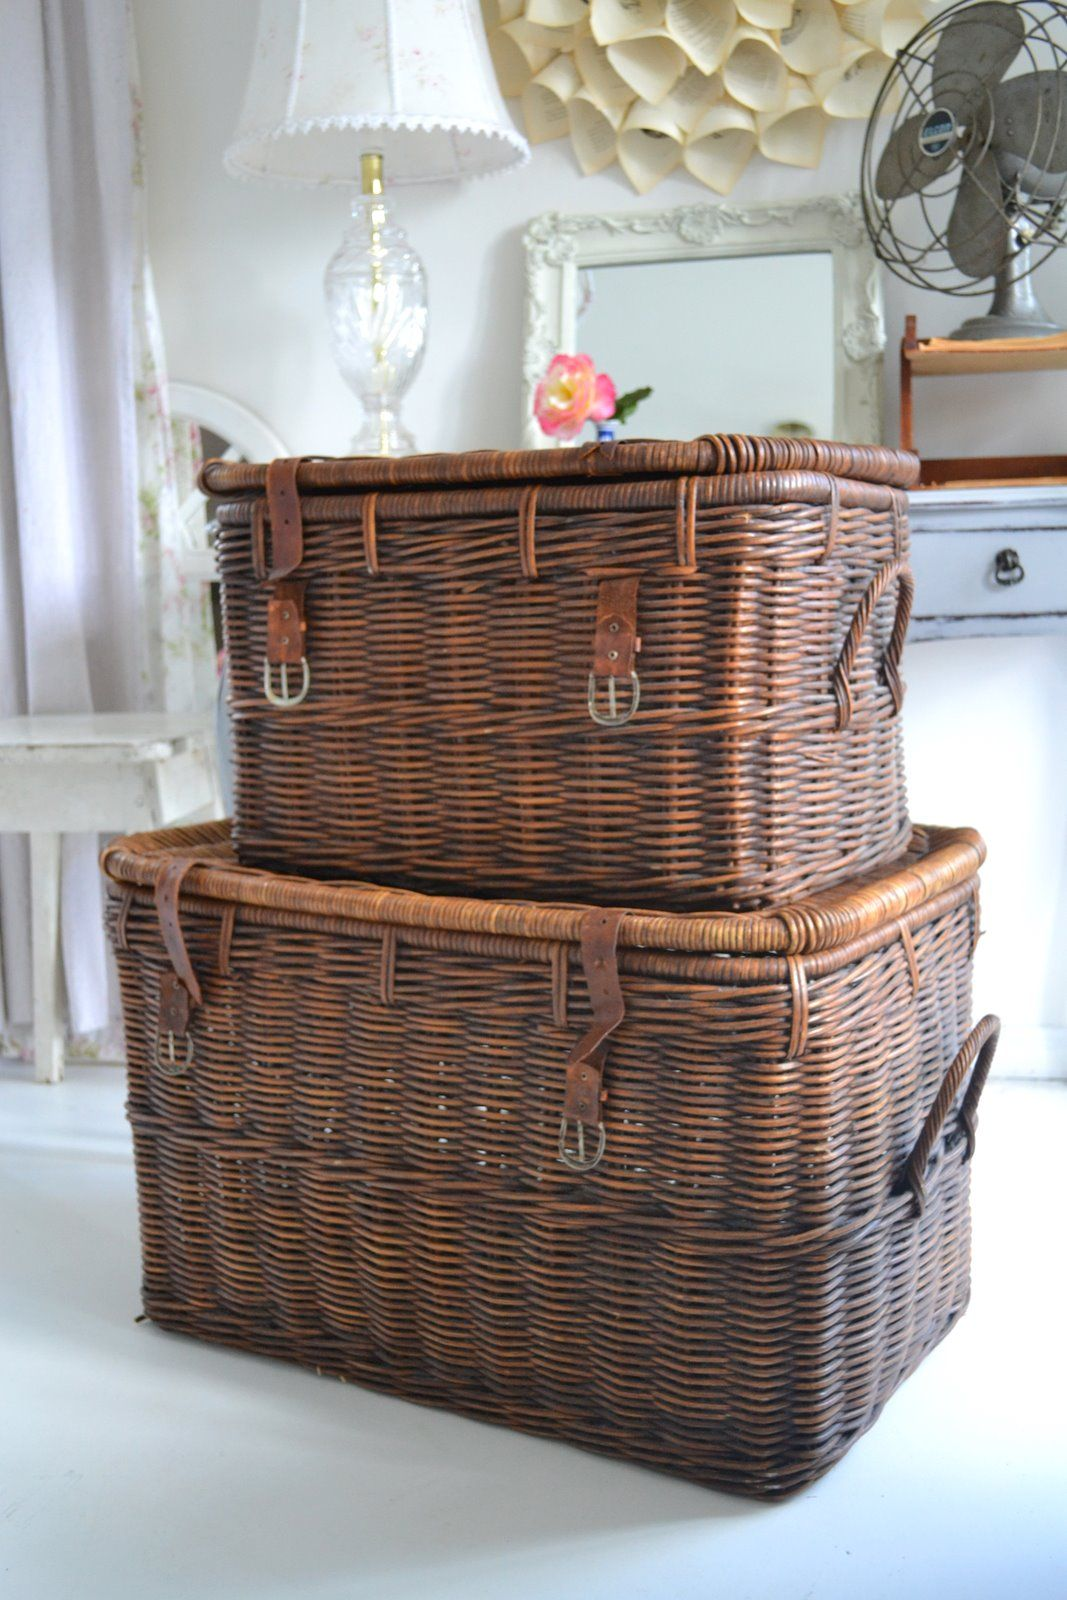 Stacked Baskets Are A Necessity For Hiding Extra Stuff Wicker